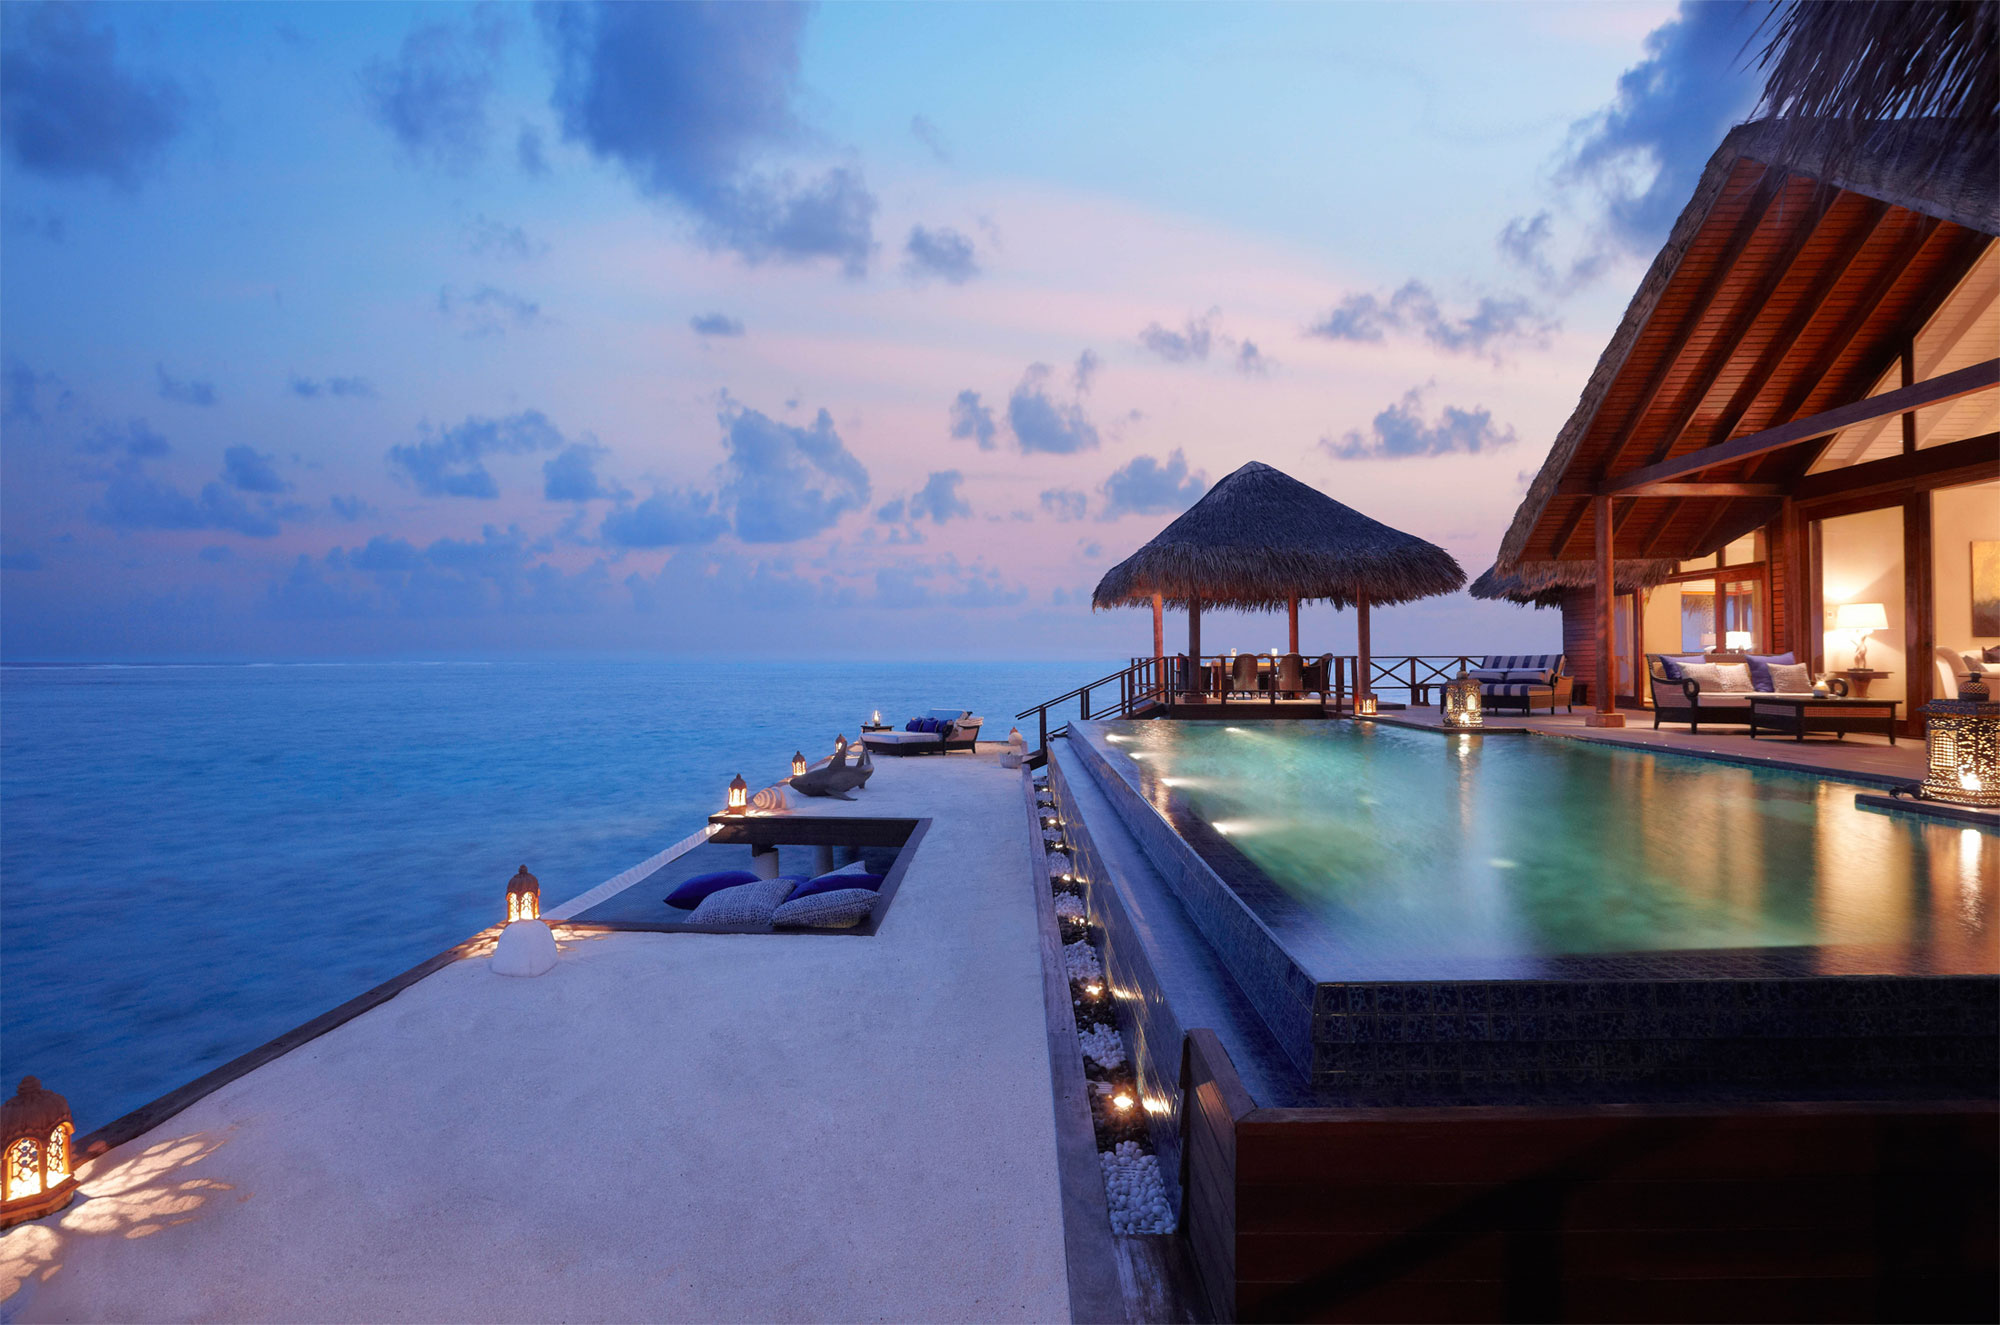 Top luxury resorts in india under inr 6000 luxury resorts in india for a perfect vacation location prices tripoto